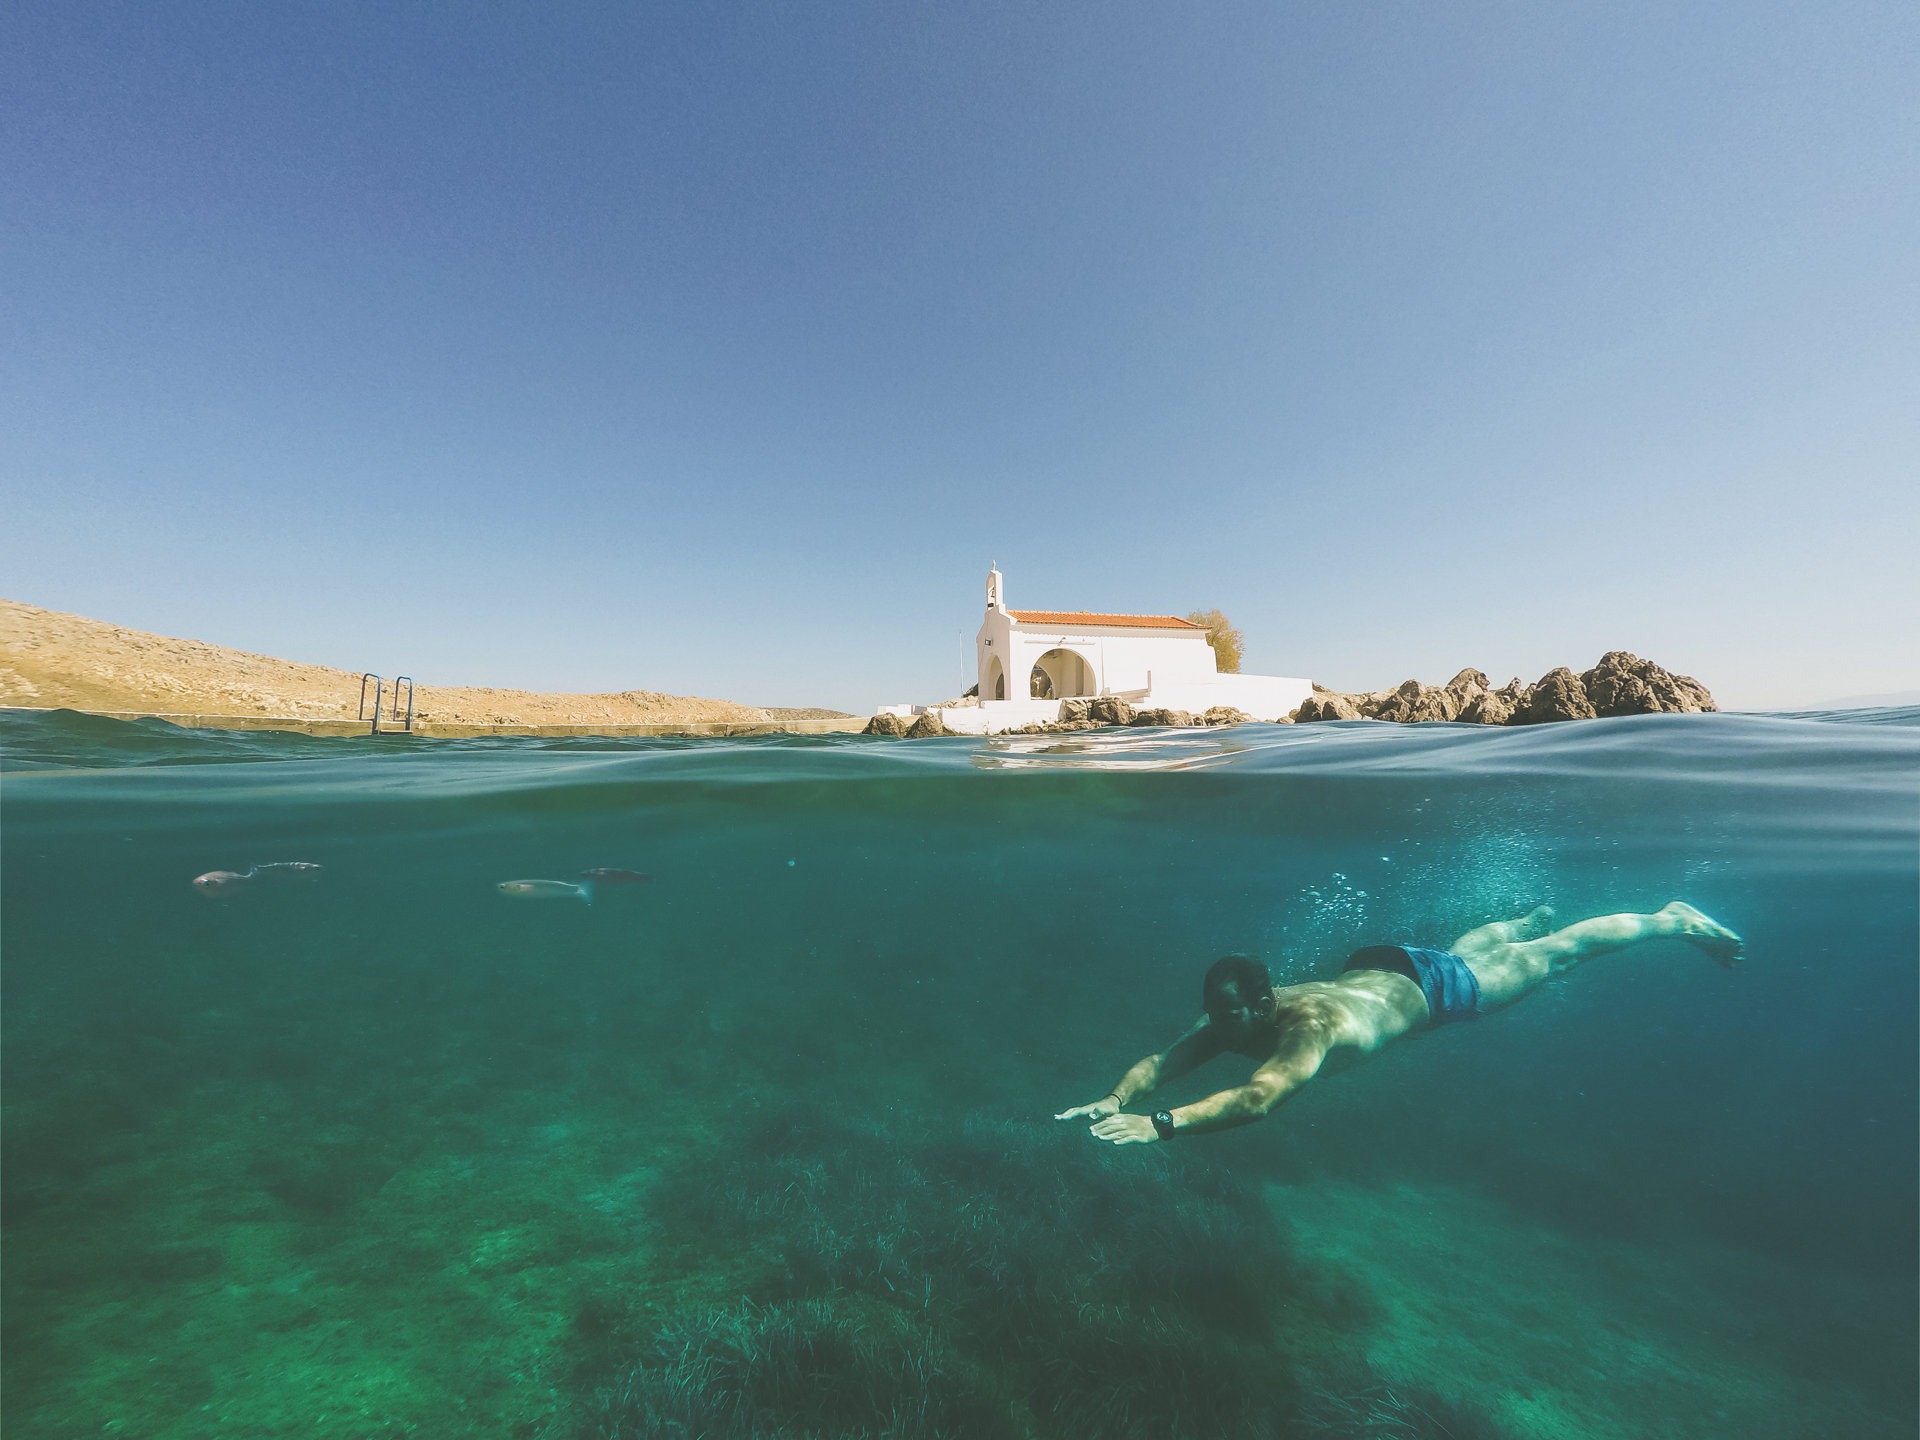 Chios at Summer, Dive into the fun